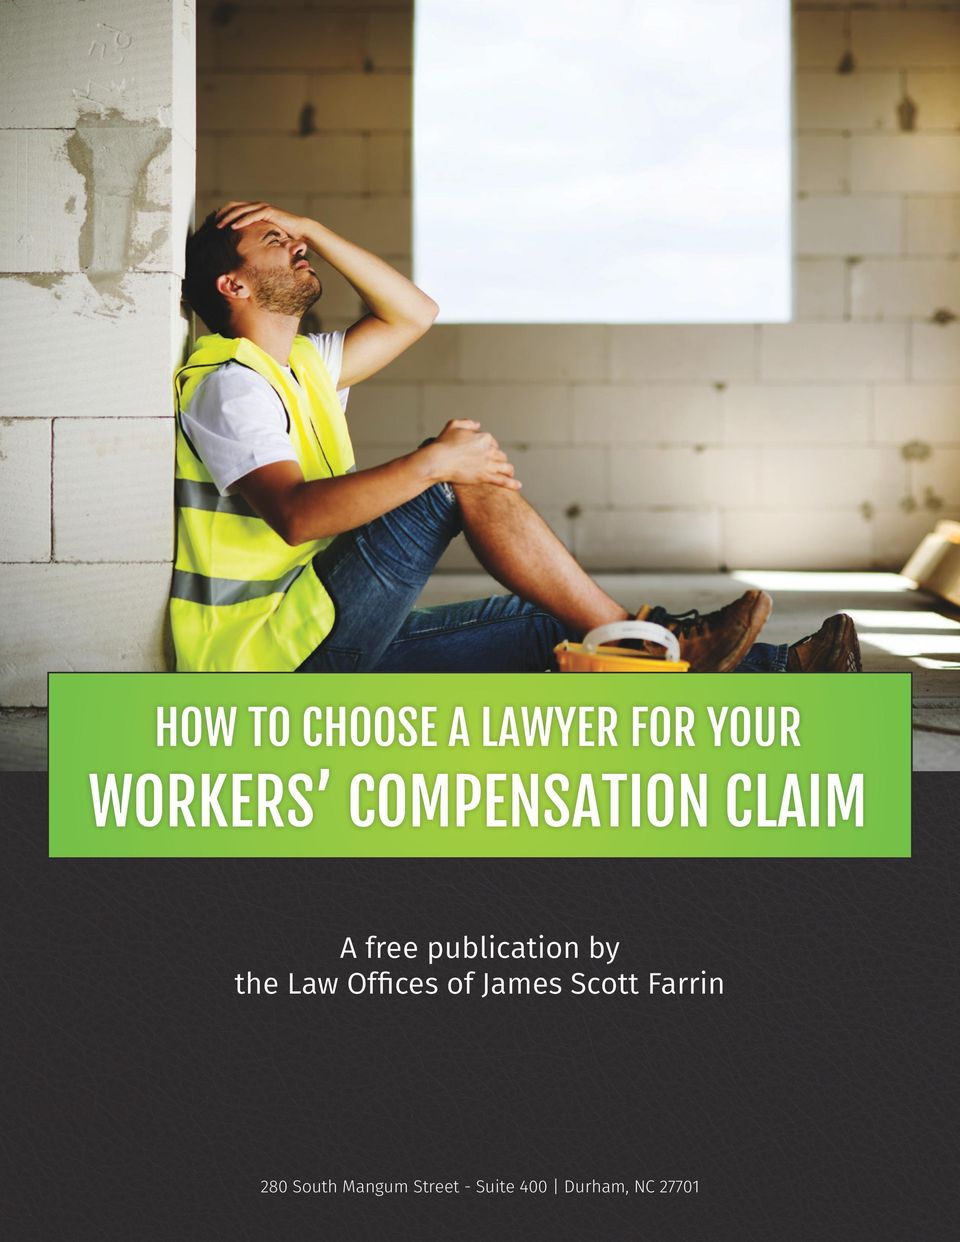 the Law Offices of James Scott Farrin 280